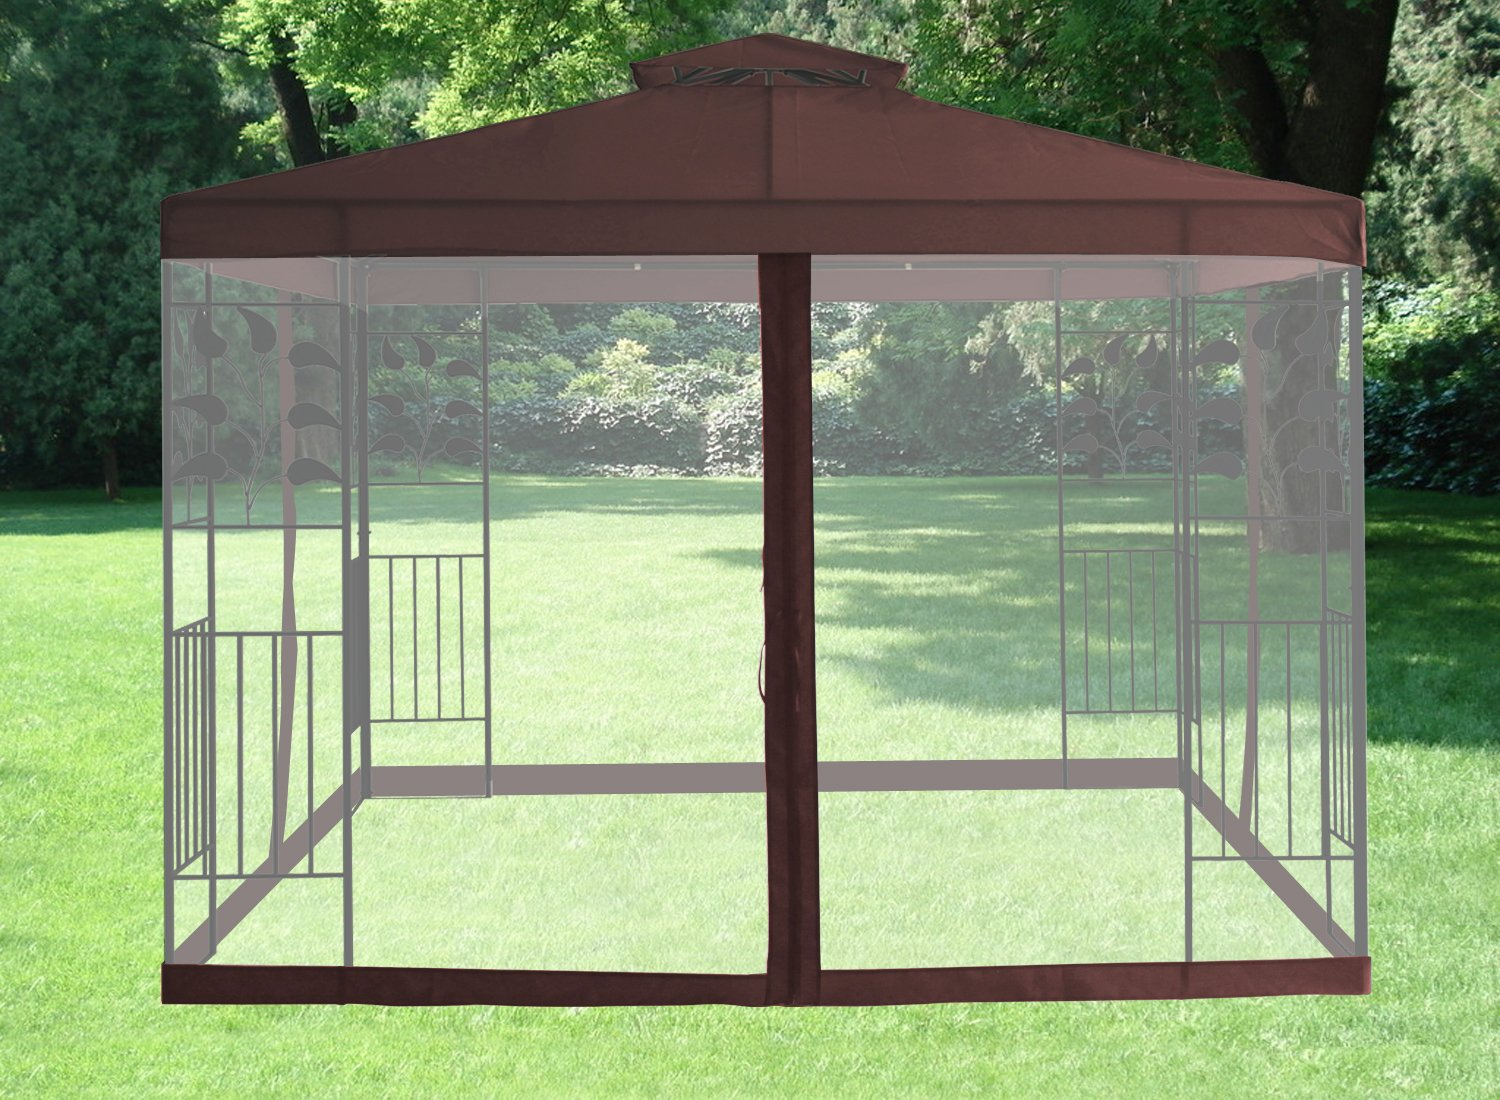 Greenbay Pavilion Gazebo Side Net Marquee Fly Screen Gathering Mosquito Netting Washable Removable CoffeeSide Only Amazoncouk Garden Outdoors